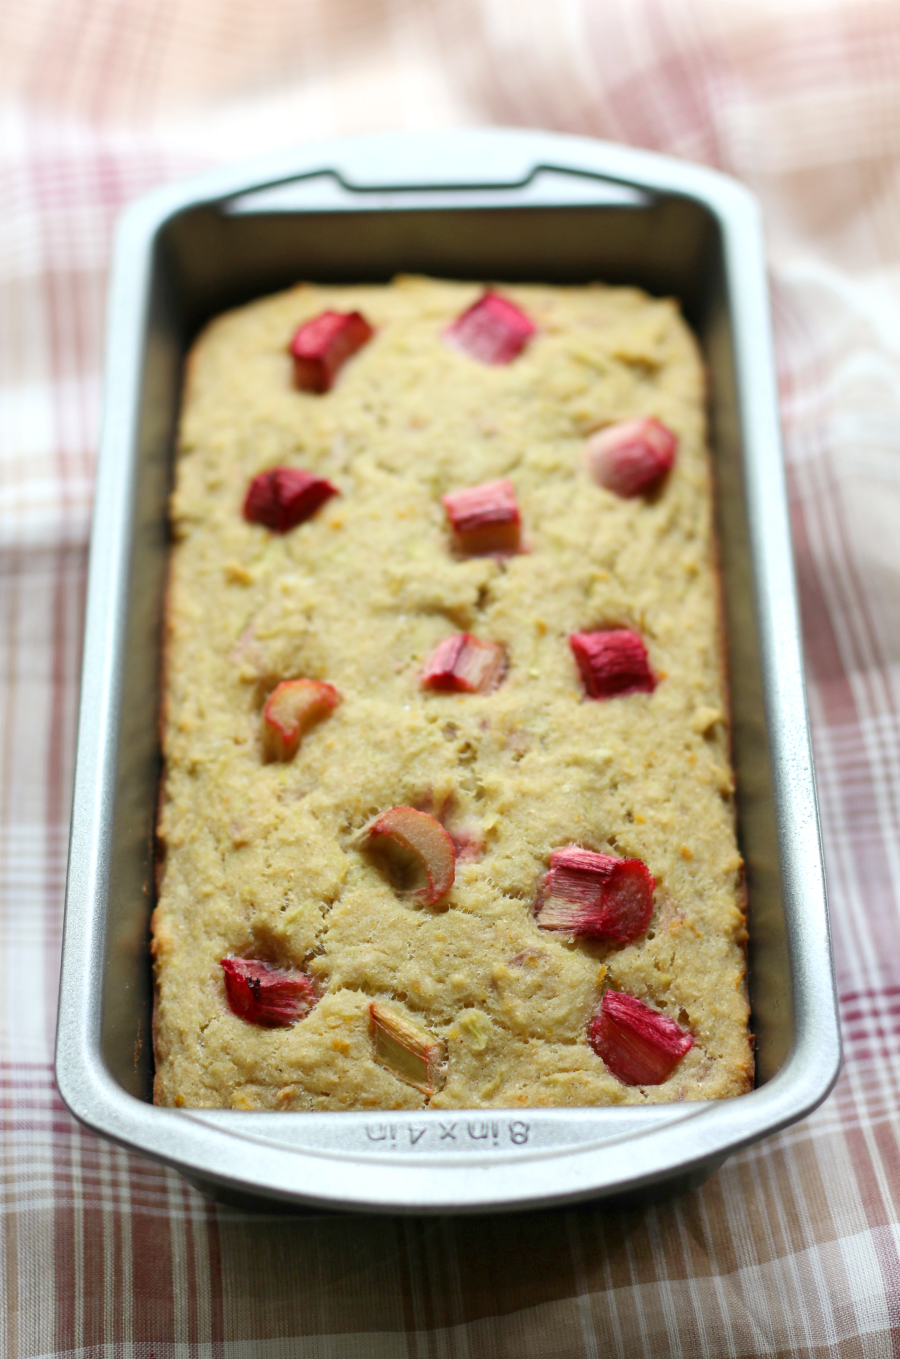 Rhubarb Orange Quick Bread | Strength and Sunshine @RebeccaGF666 Tart, sweet and citrusy, this Rhubarb Orange Quick Bread is a lovely, healthy, gluten-free, and vegan recipe to use up summer's bounty. Whole grain and protein-packed by using quinoa and sorghum flour, you'll want to bake up a loaf for every meal!